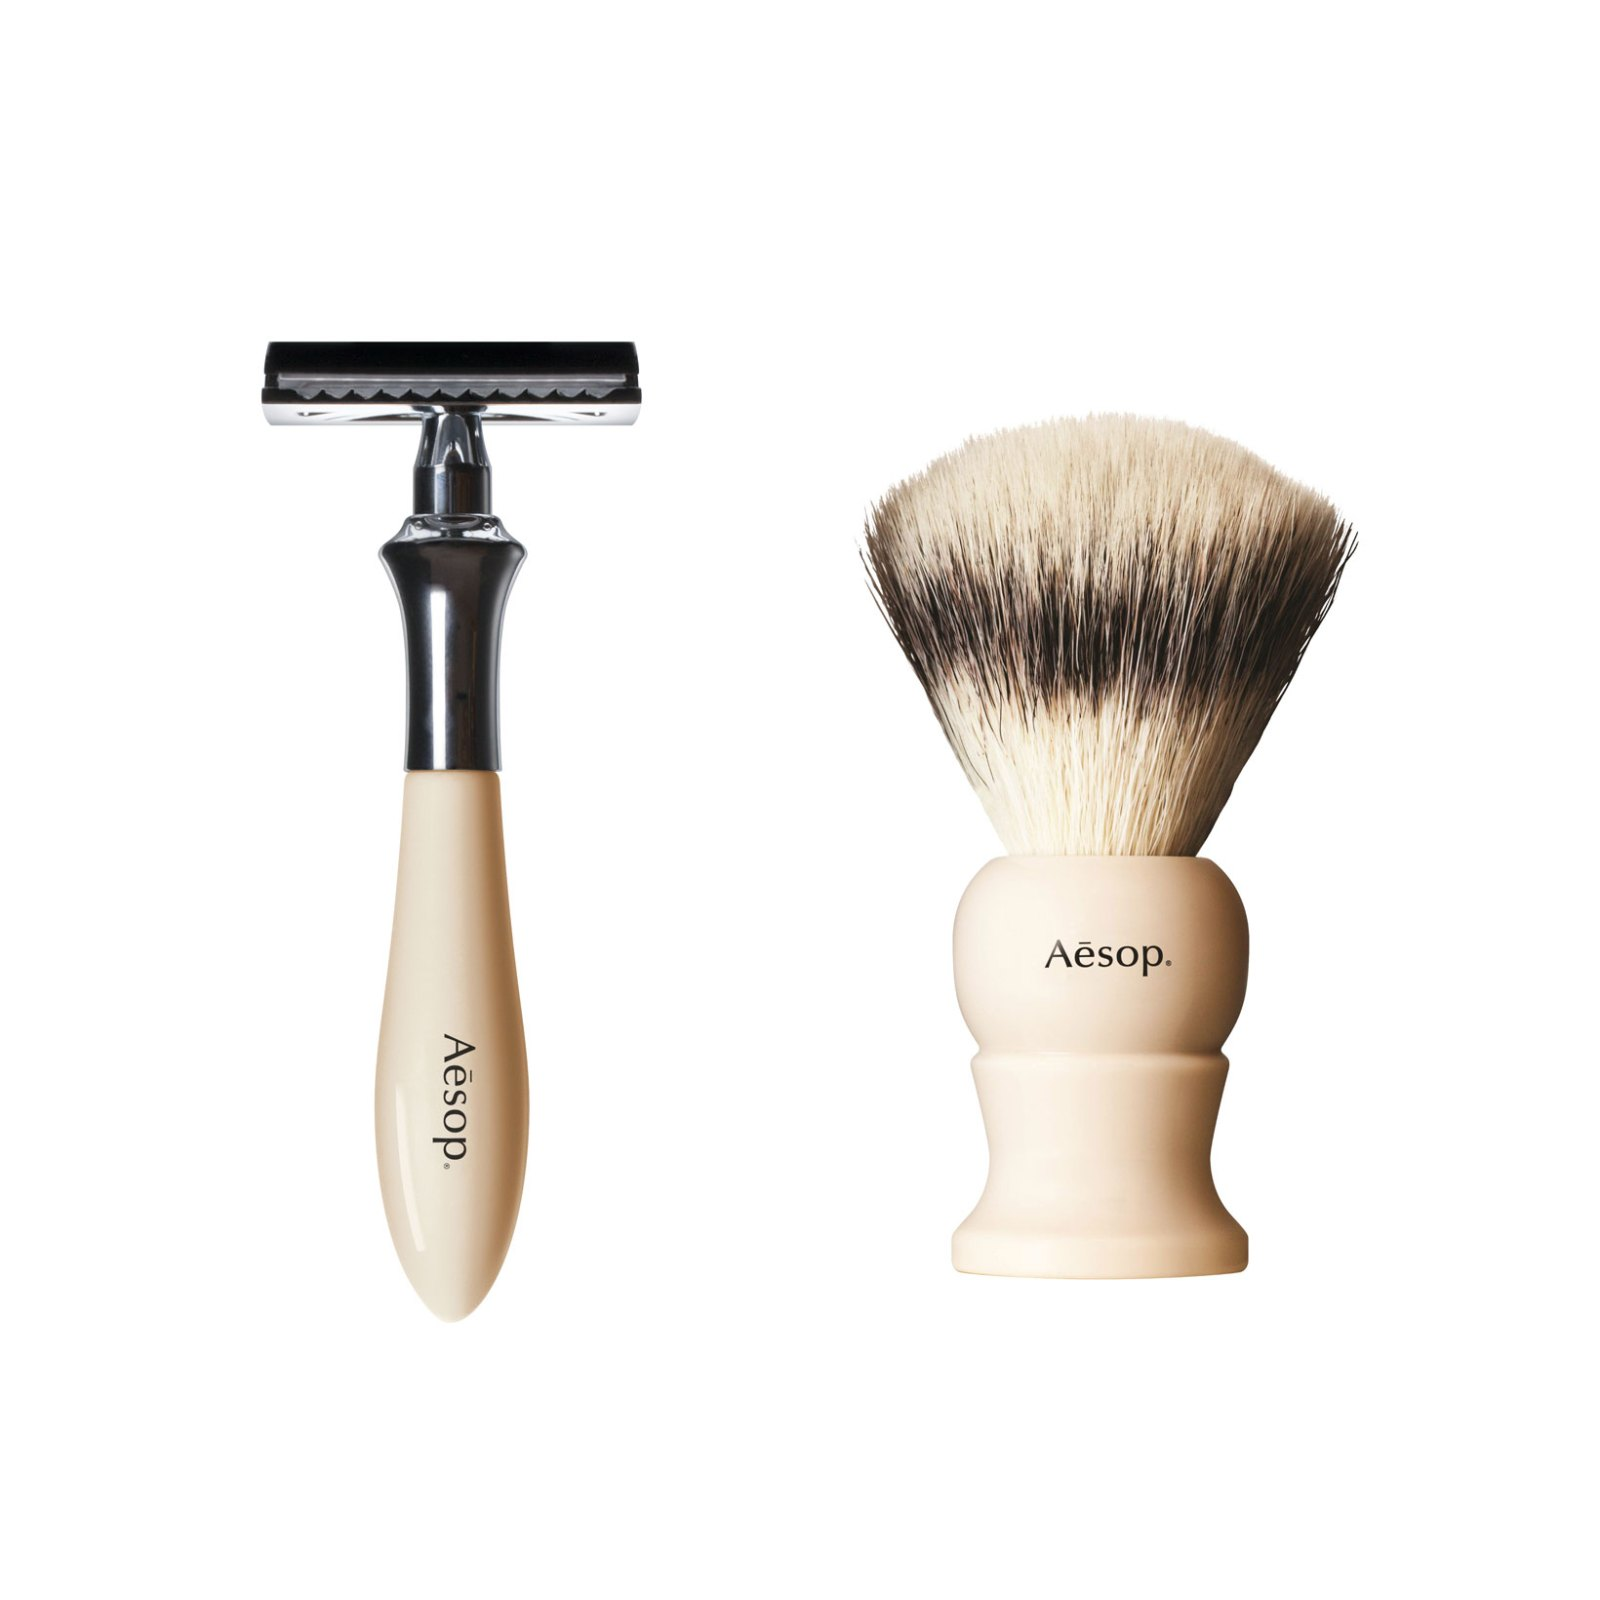 Aesop Shaving Brush and Razor